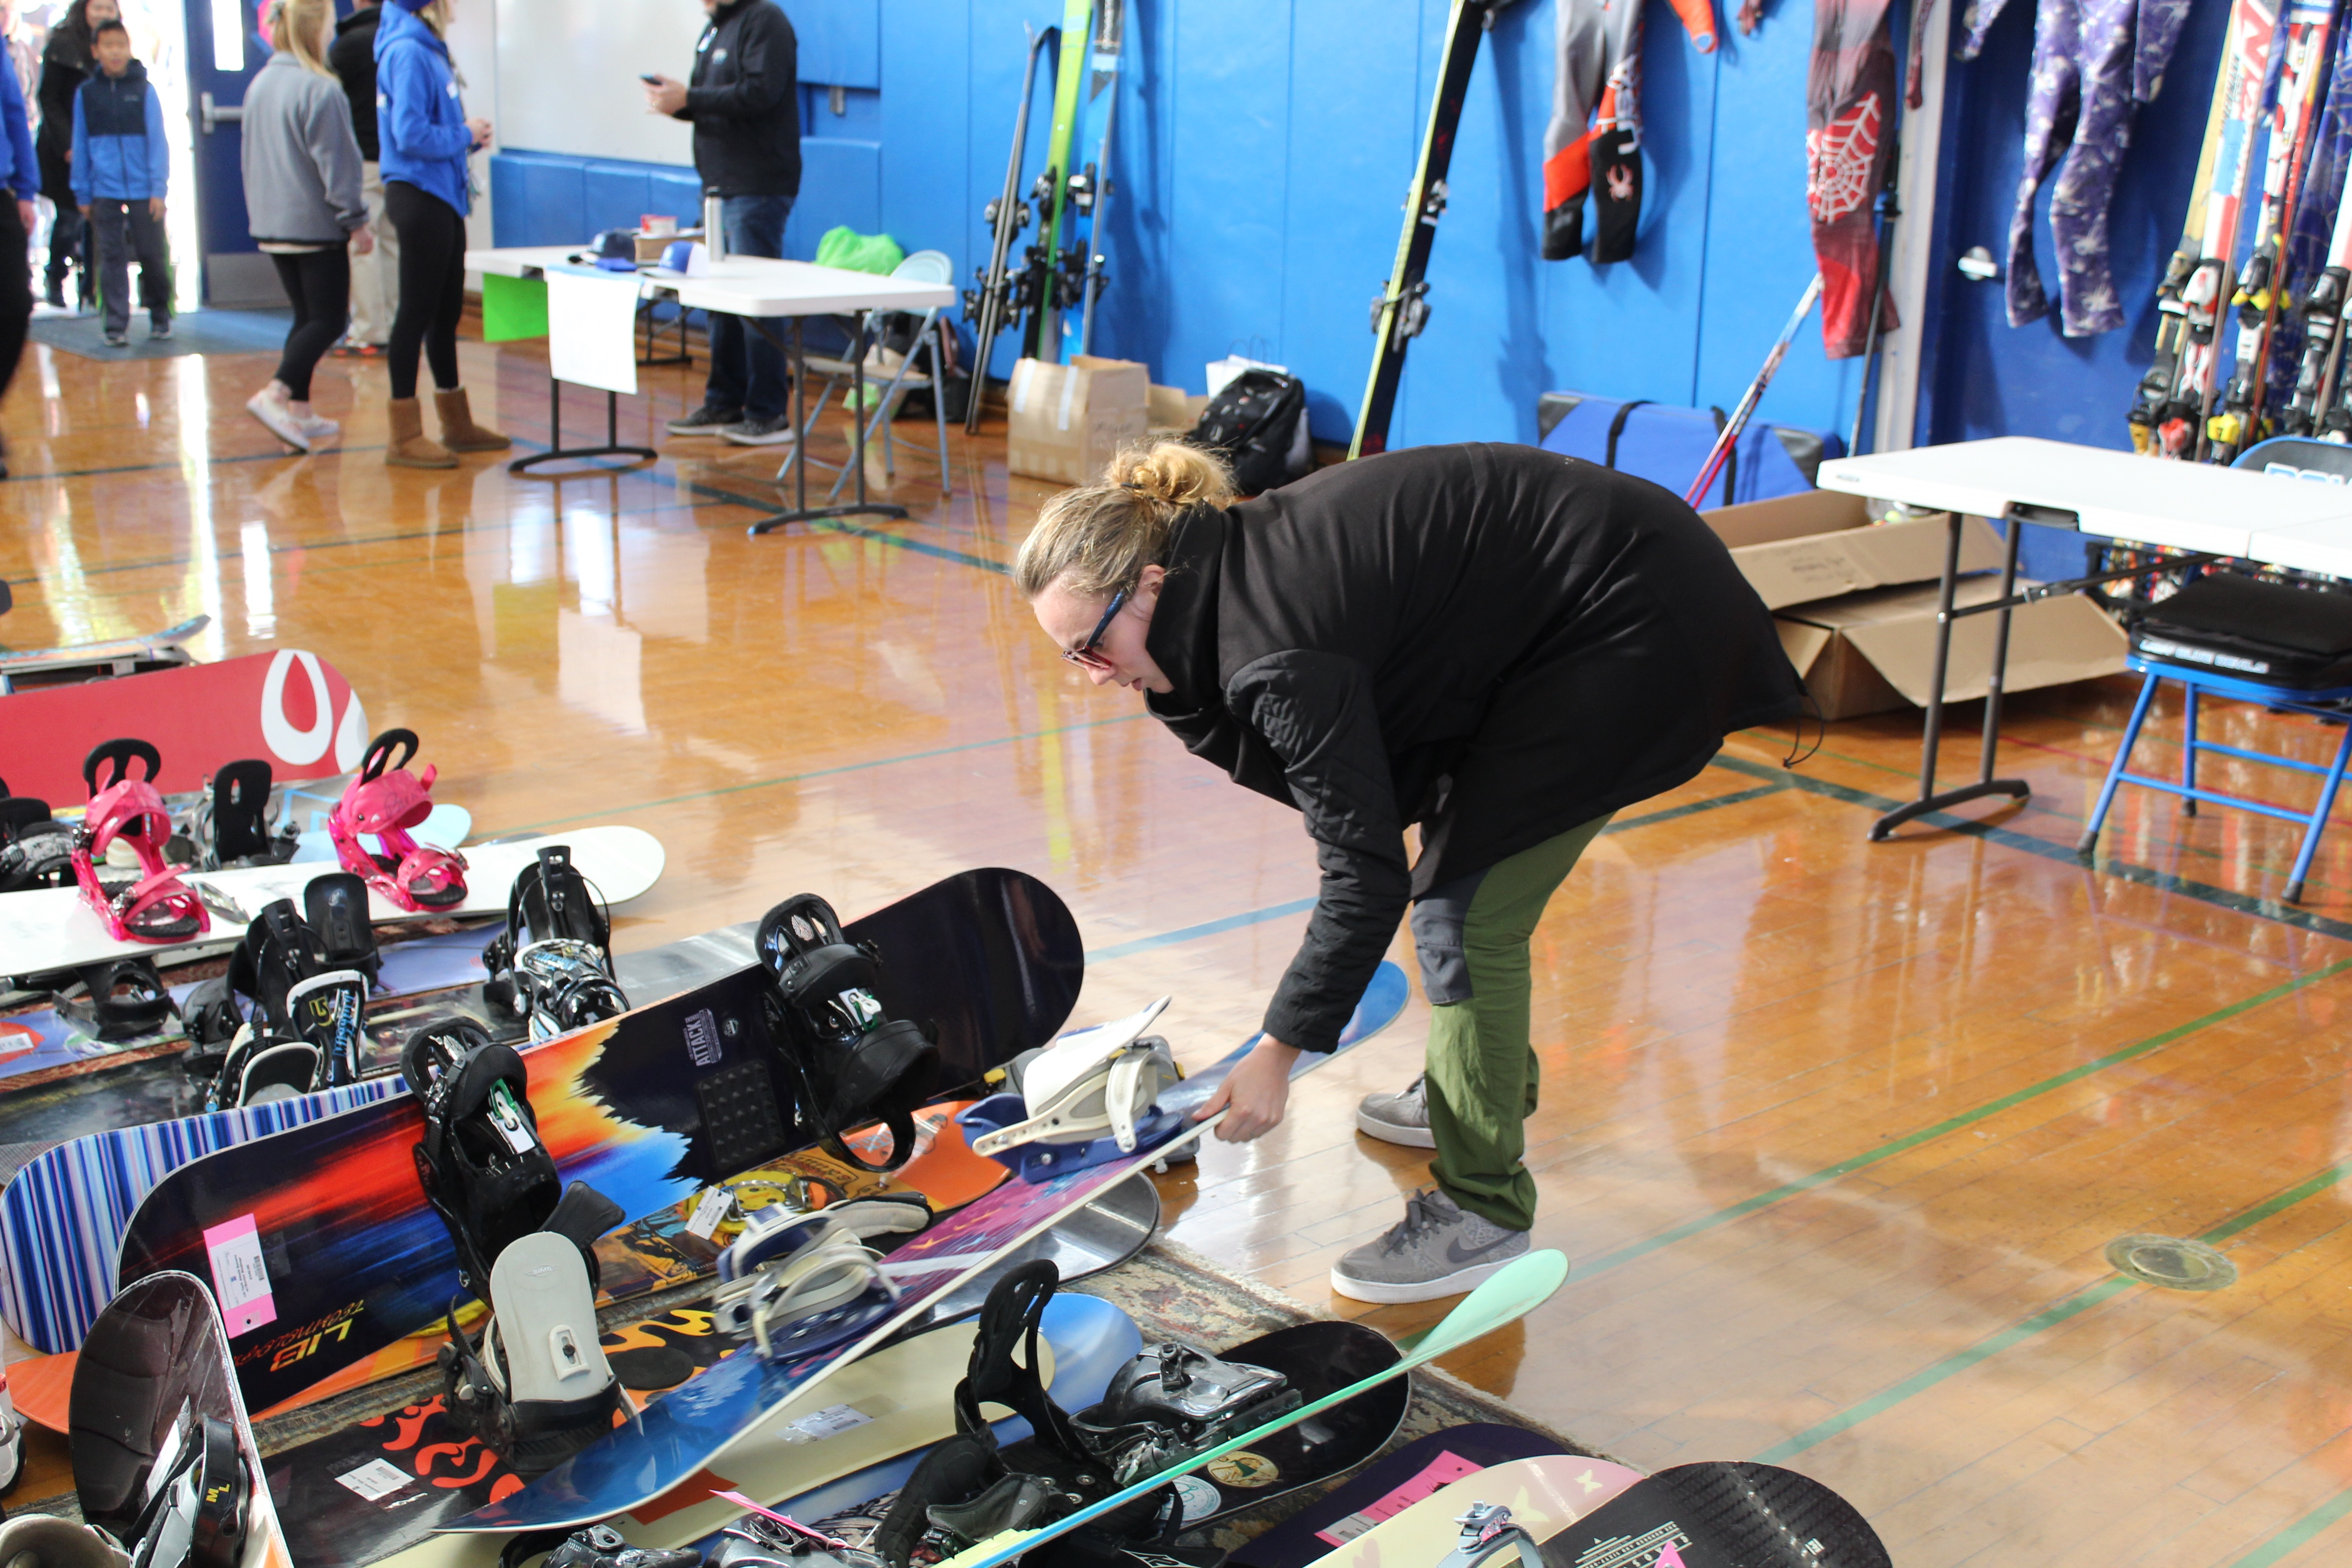 Snowboards are a very popular item at the ski swap.